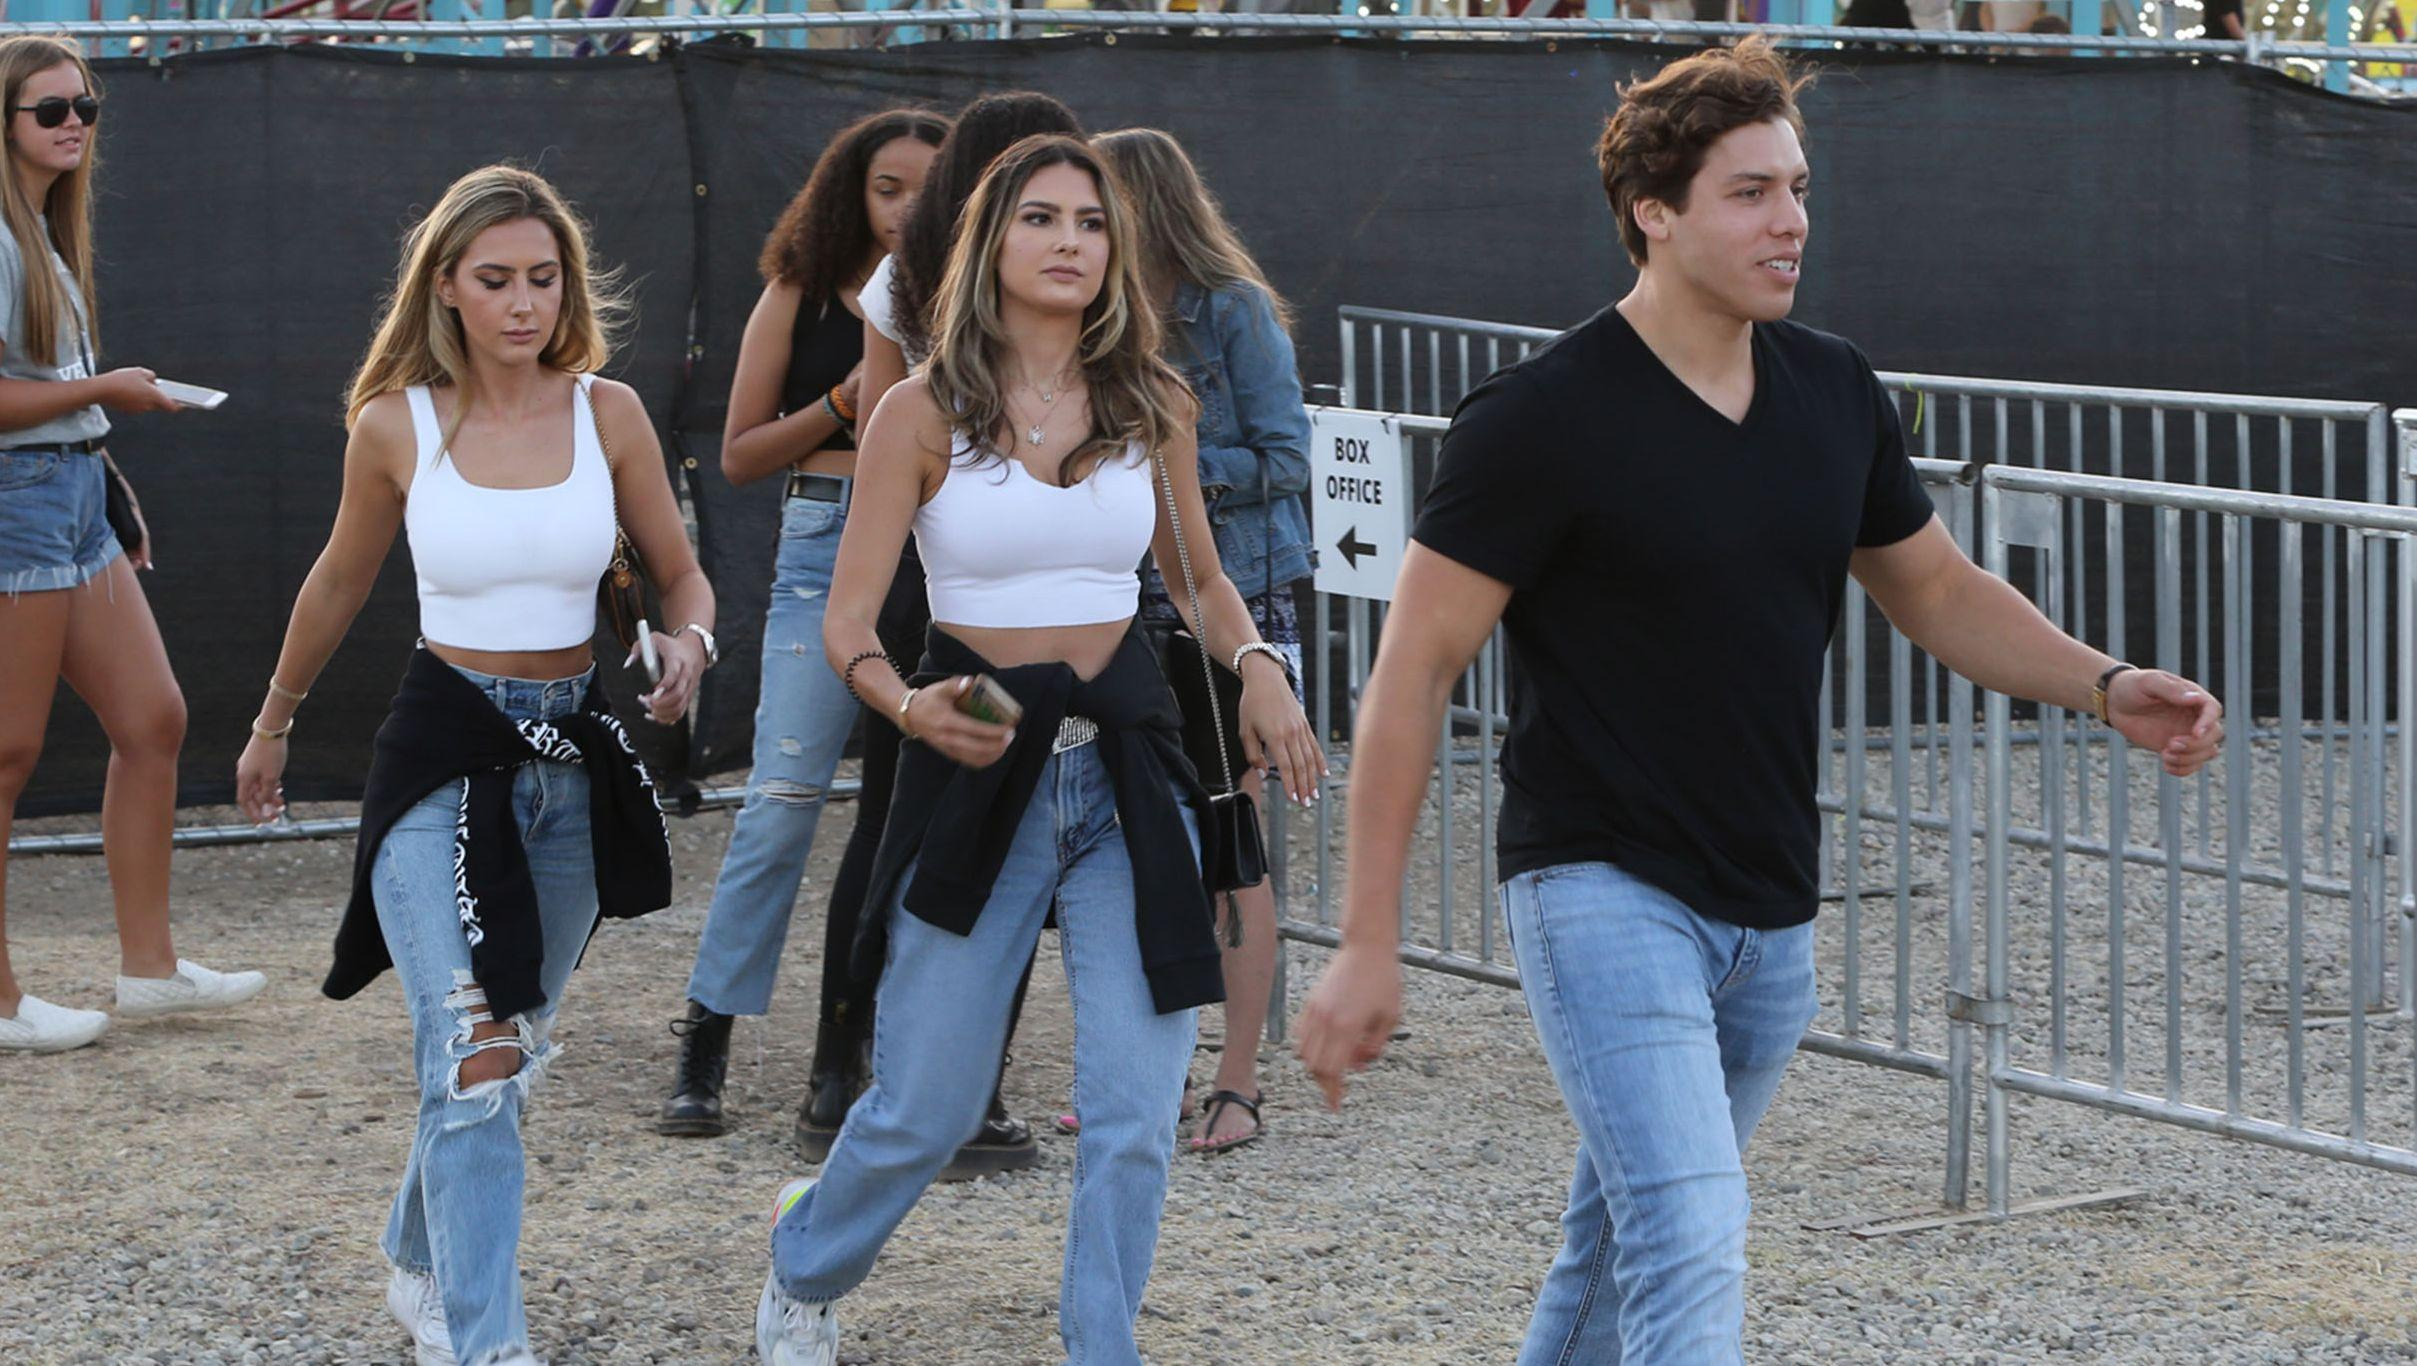 Arnold Schwarzenegger's Son Seen With Smoking Hot Sisters at